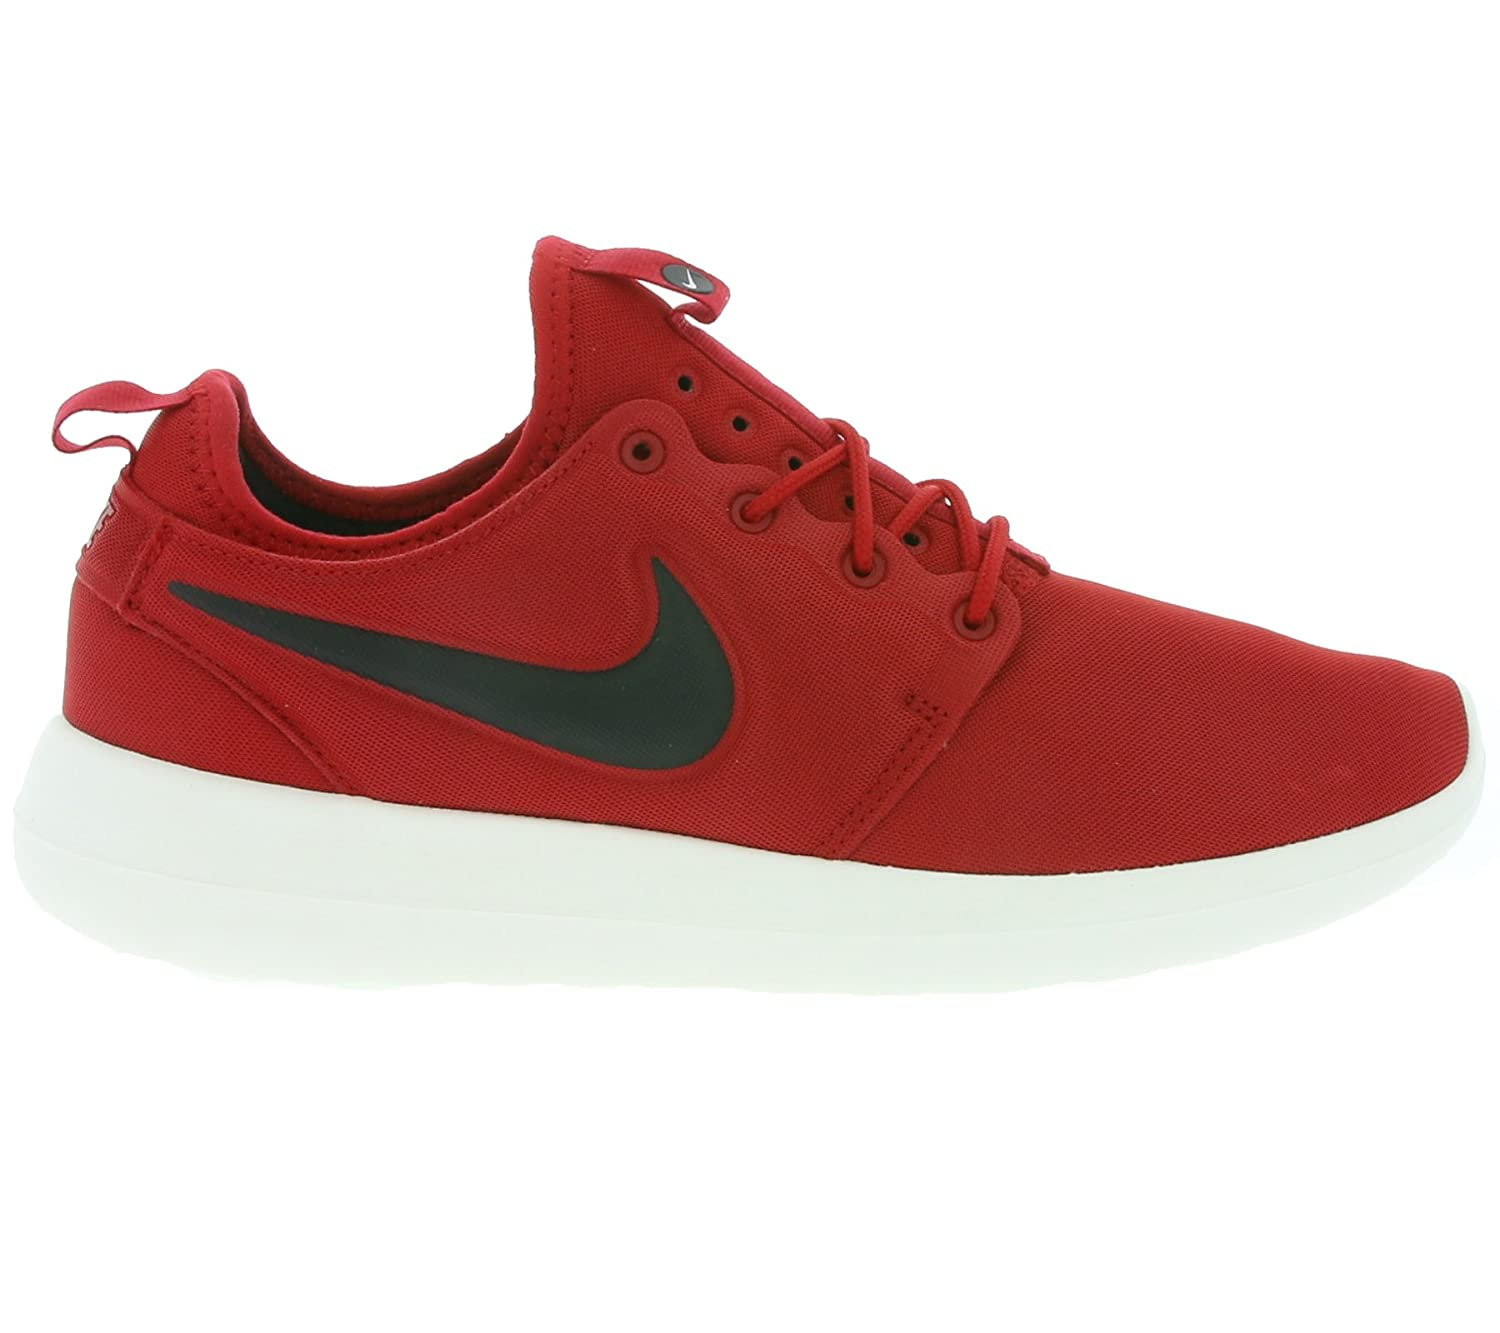 7bfdd6825bbf Nike Roshe Two Mens Shoes Gym Red Black Sail Volt 844656-600 (9. 5 D(M)  US)  Buy Online at Low Prices in India - Amazon.in